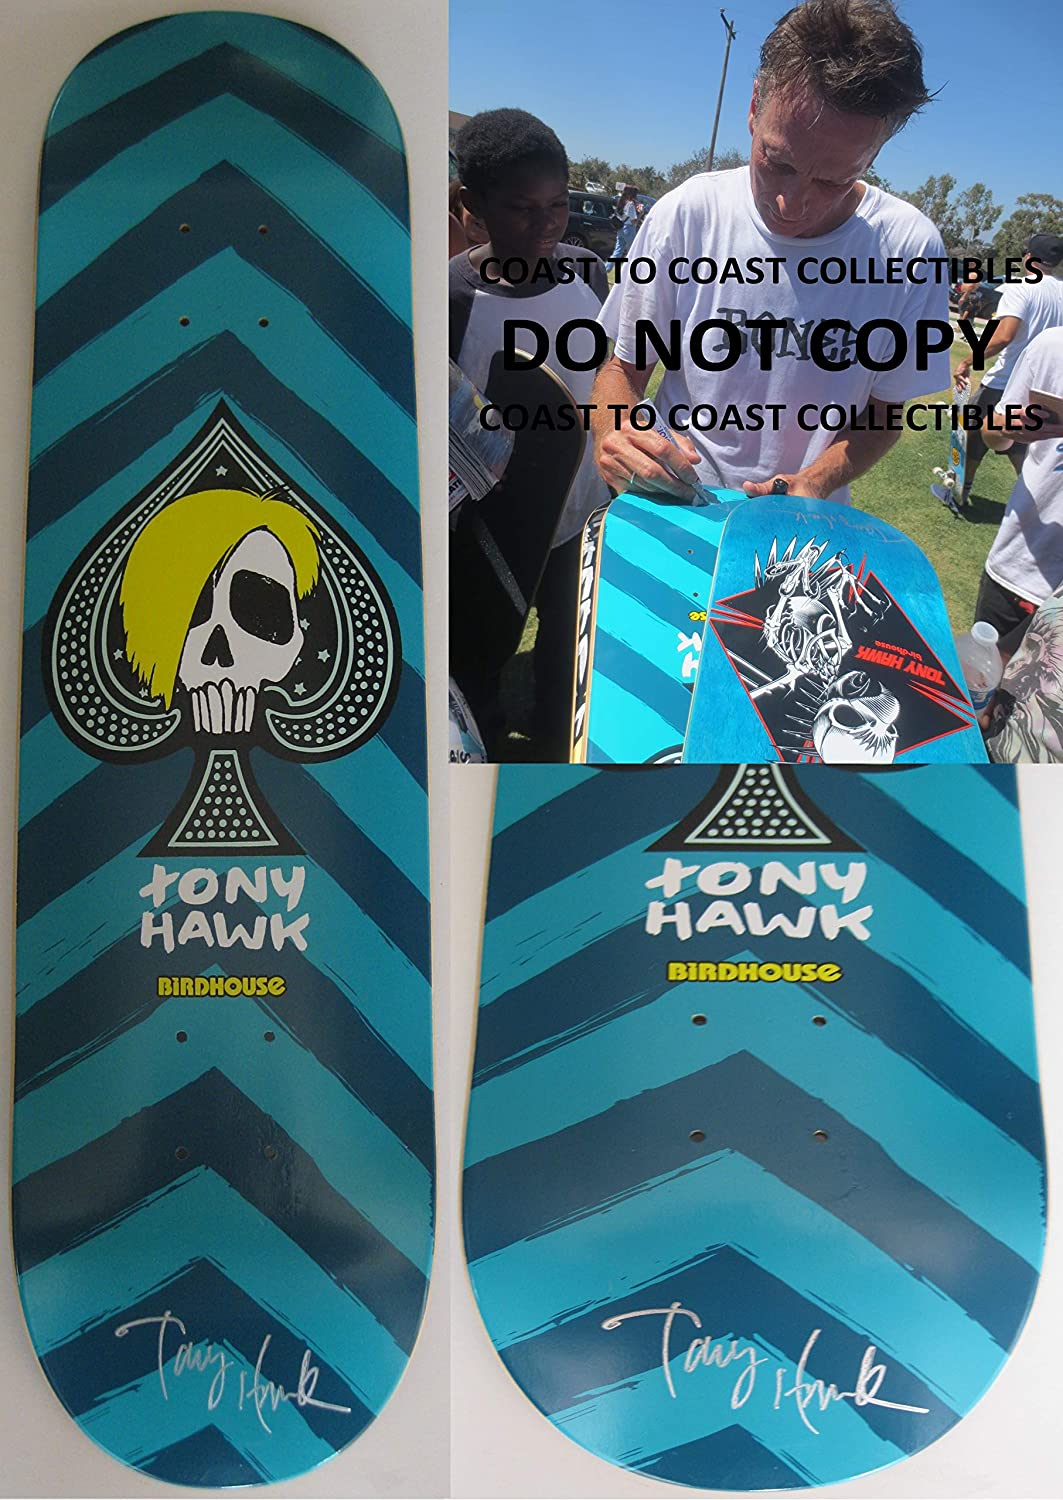 Tony Hawk Signed Autographed Birdhouse Skateboard Deck Coa With Pro Model The Exact Proof Photo Of Signing Will Be Included At Amazons Sports Collectibles